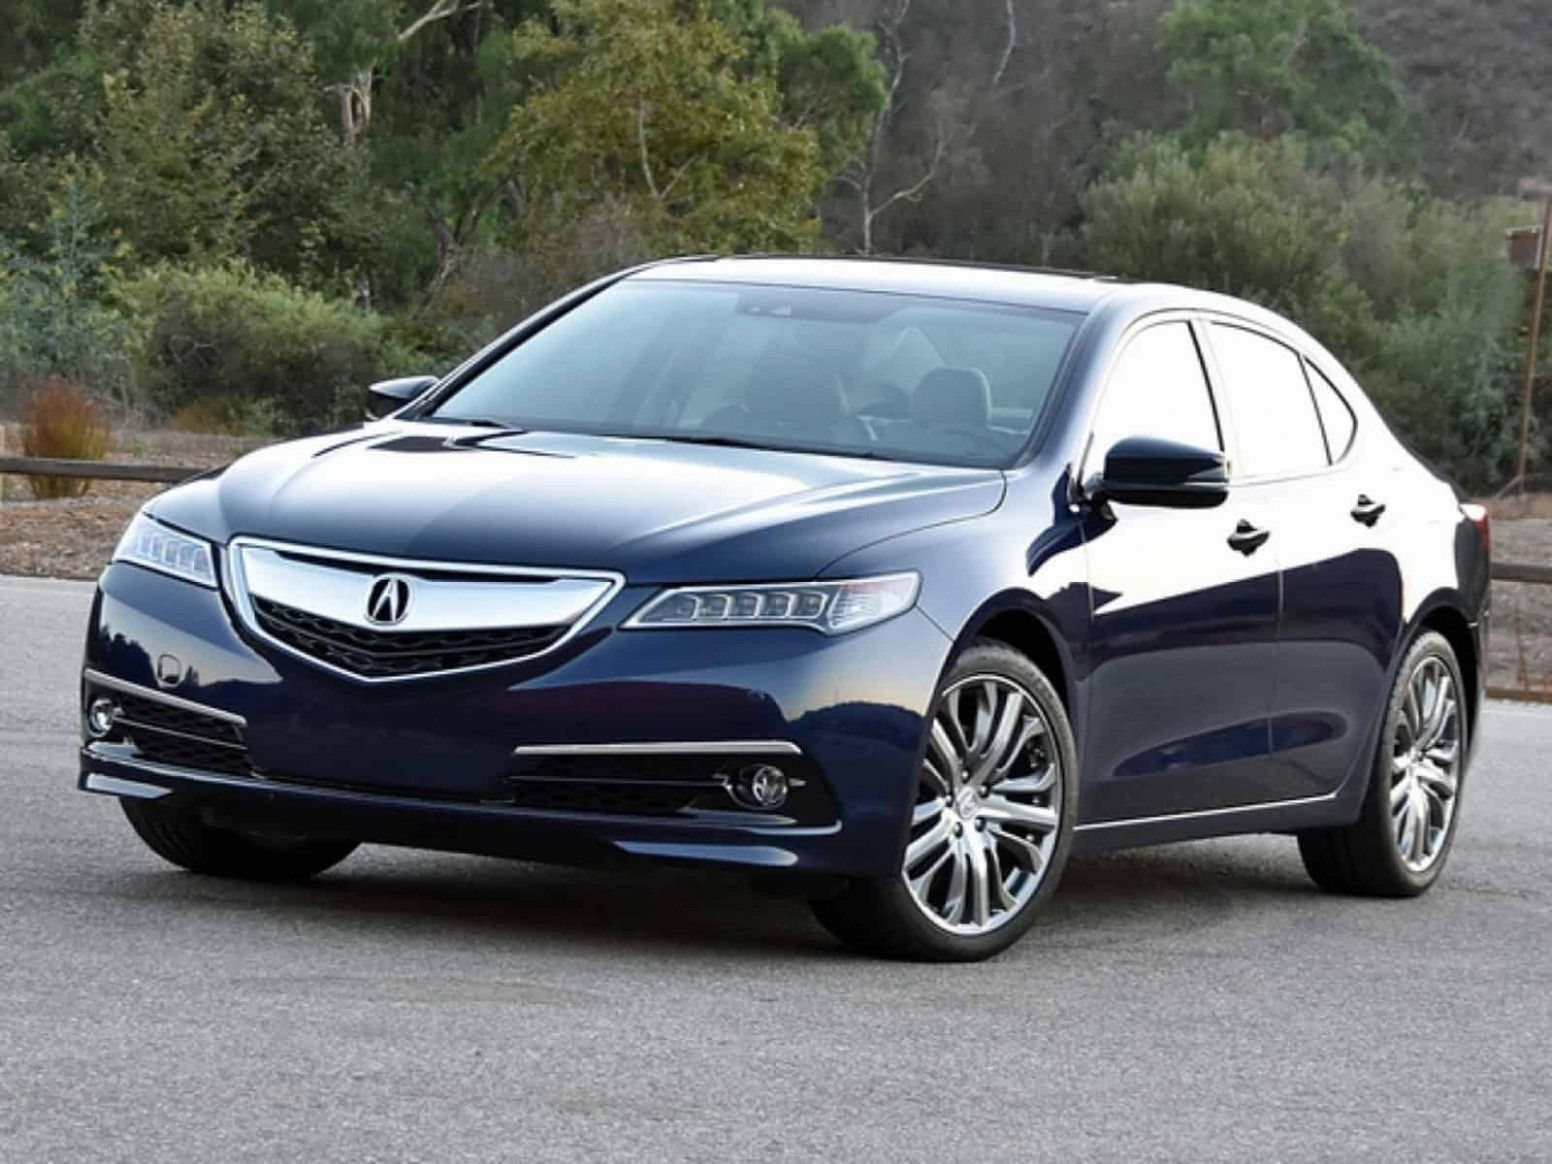 Acura Zdx 2020 Price In Nigeria Reviews 2020 Car Reviews